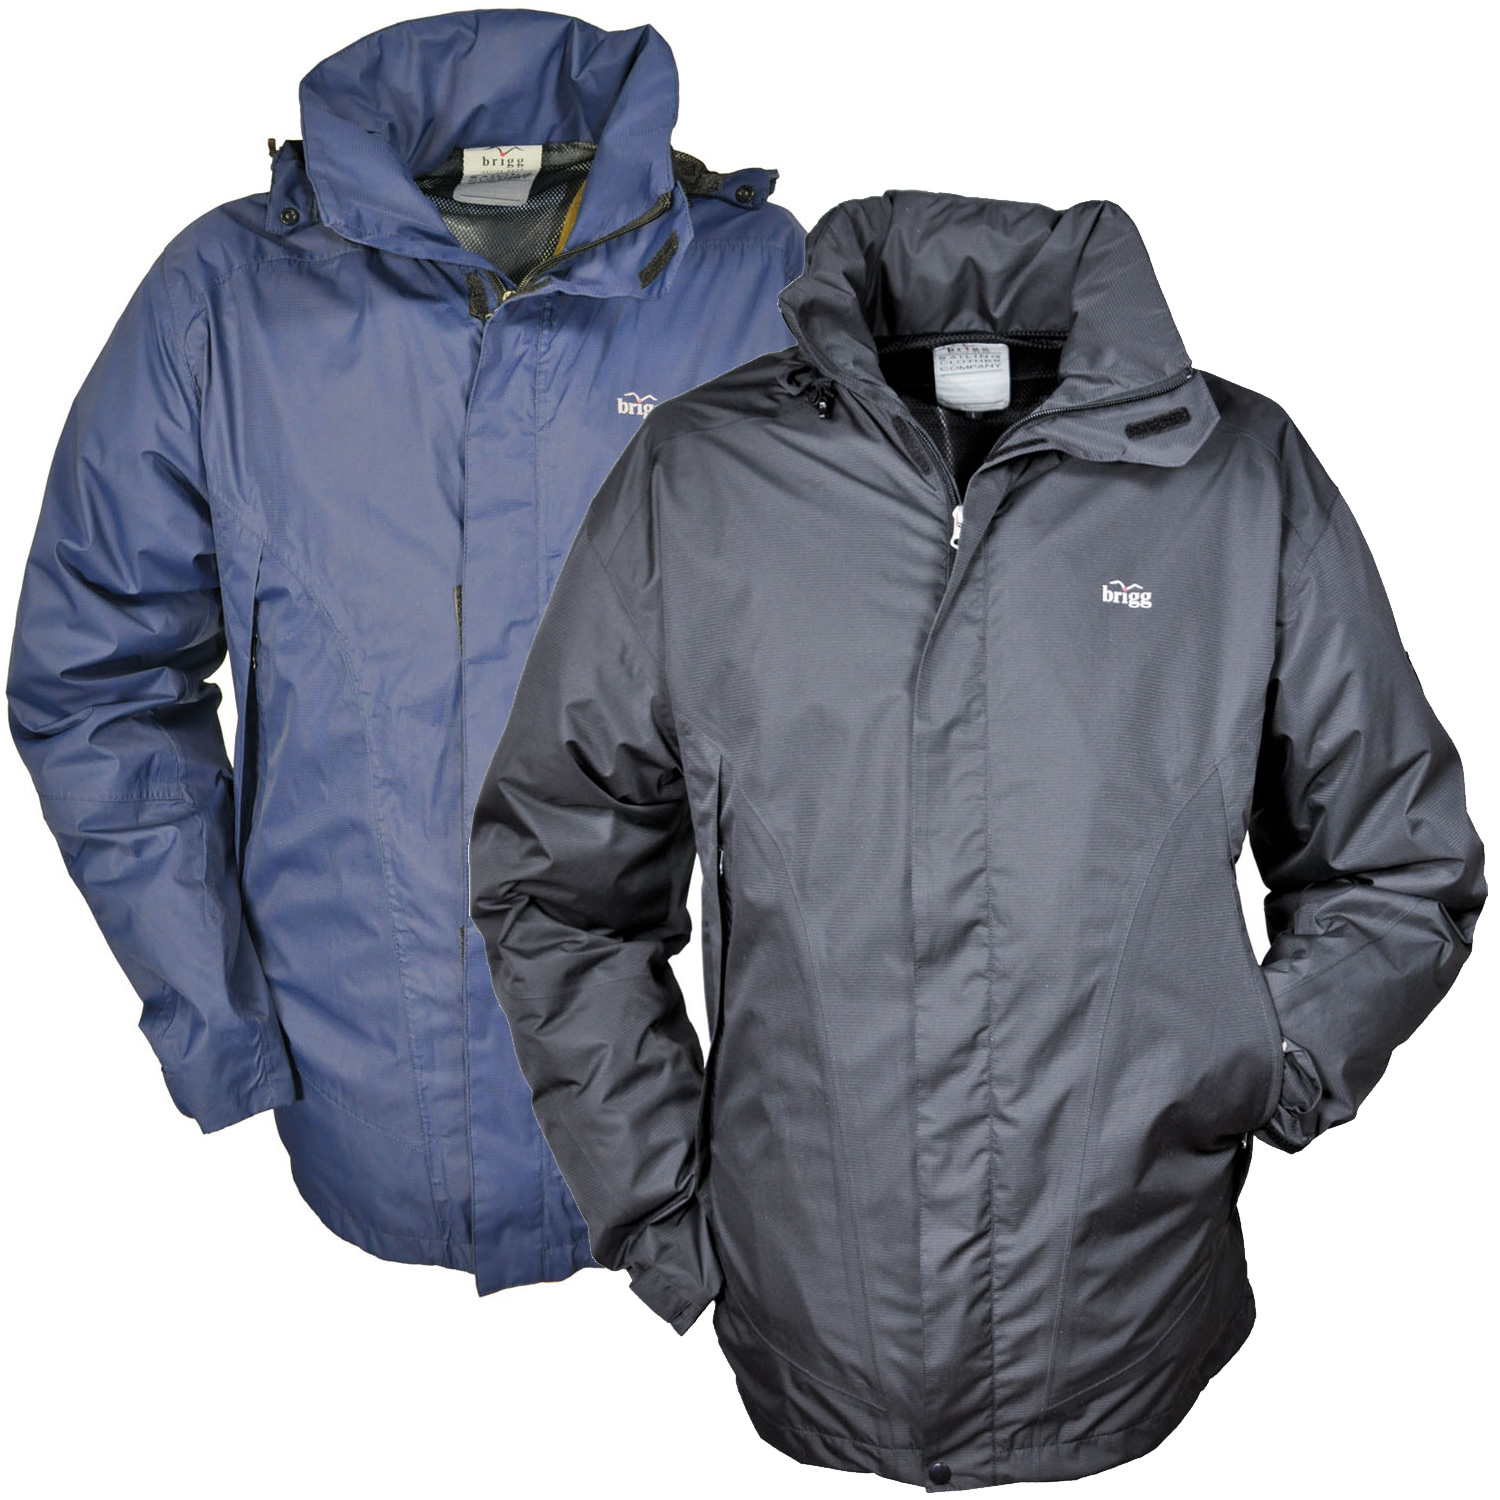 Brigg Perfect - Herren Pack Away Regenjacke